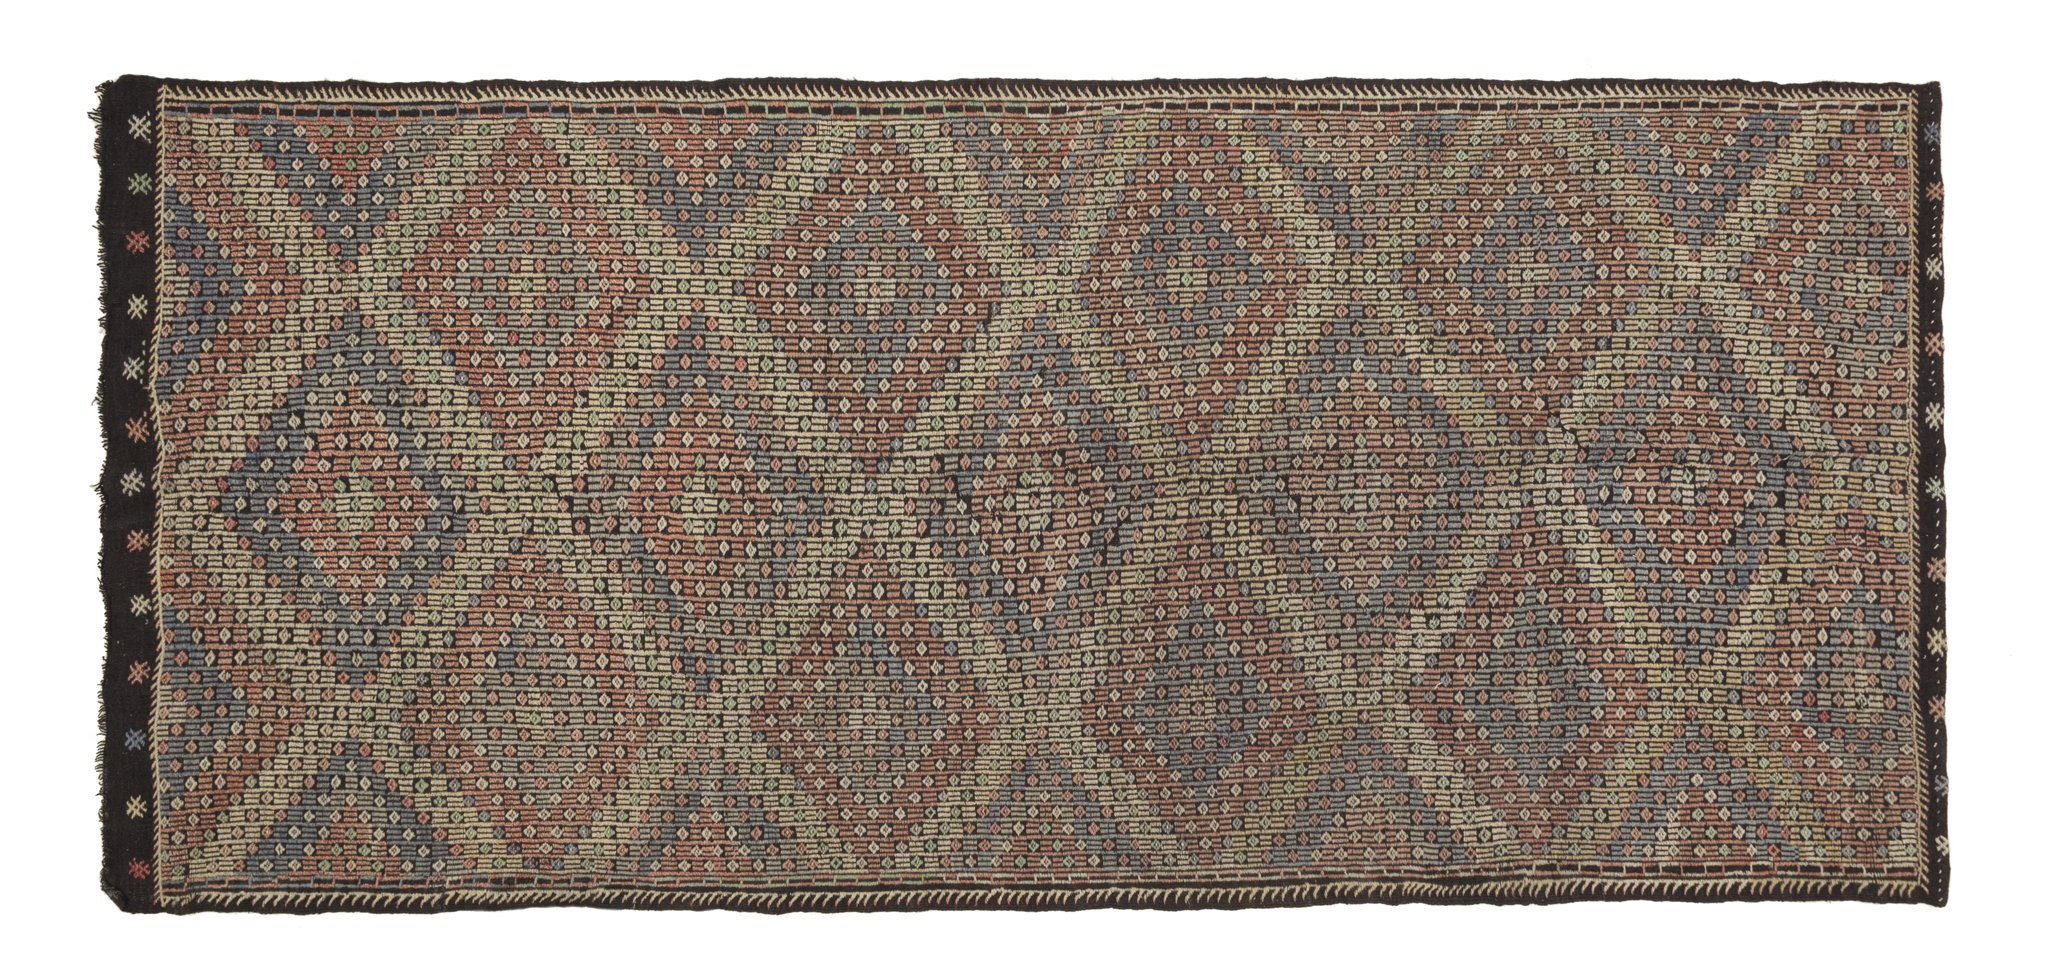 Vintage Tribal Kilim Rug Clair